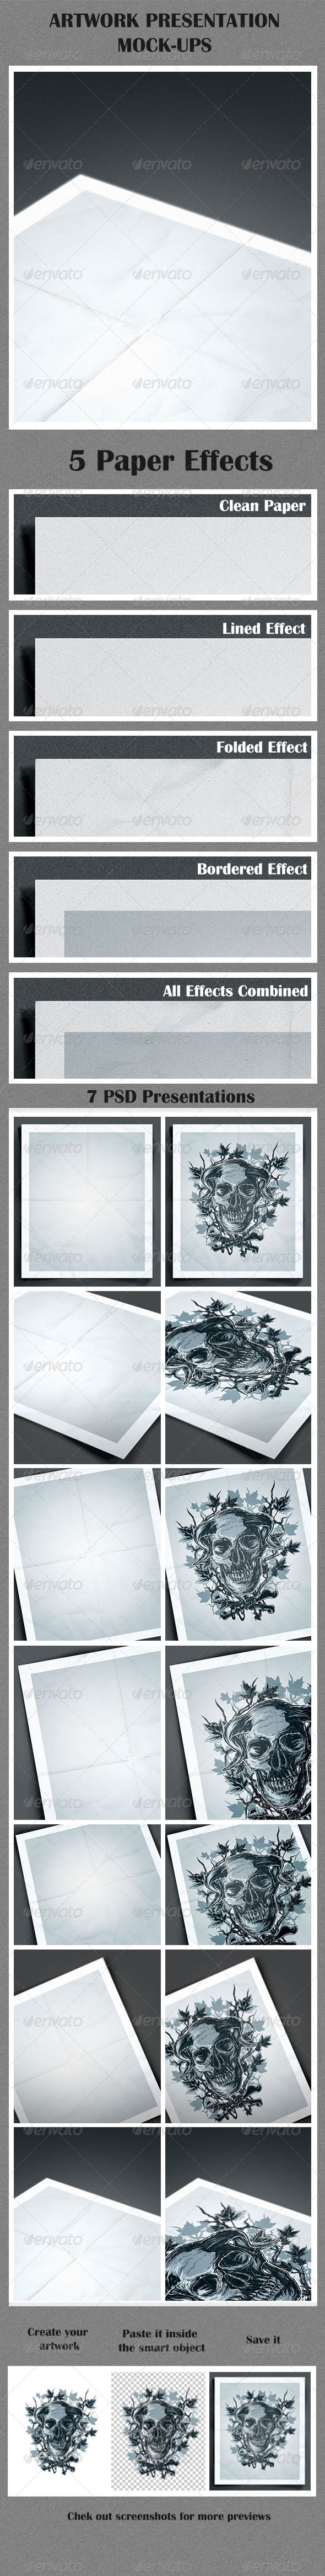 GraphicRiver Artwork Presentation Mock-Ups 6852709